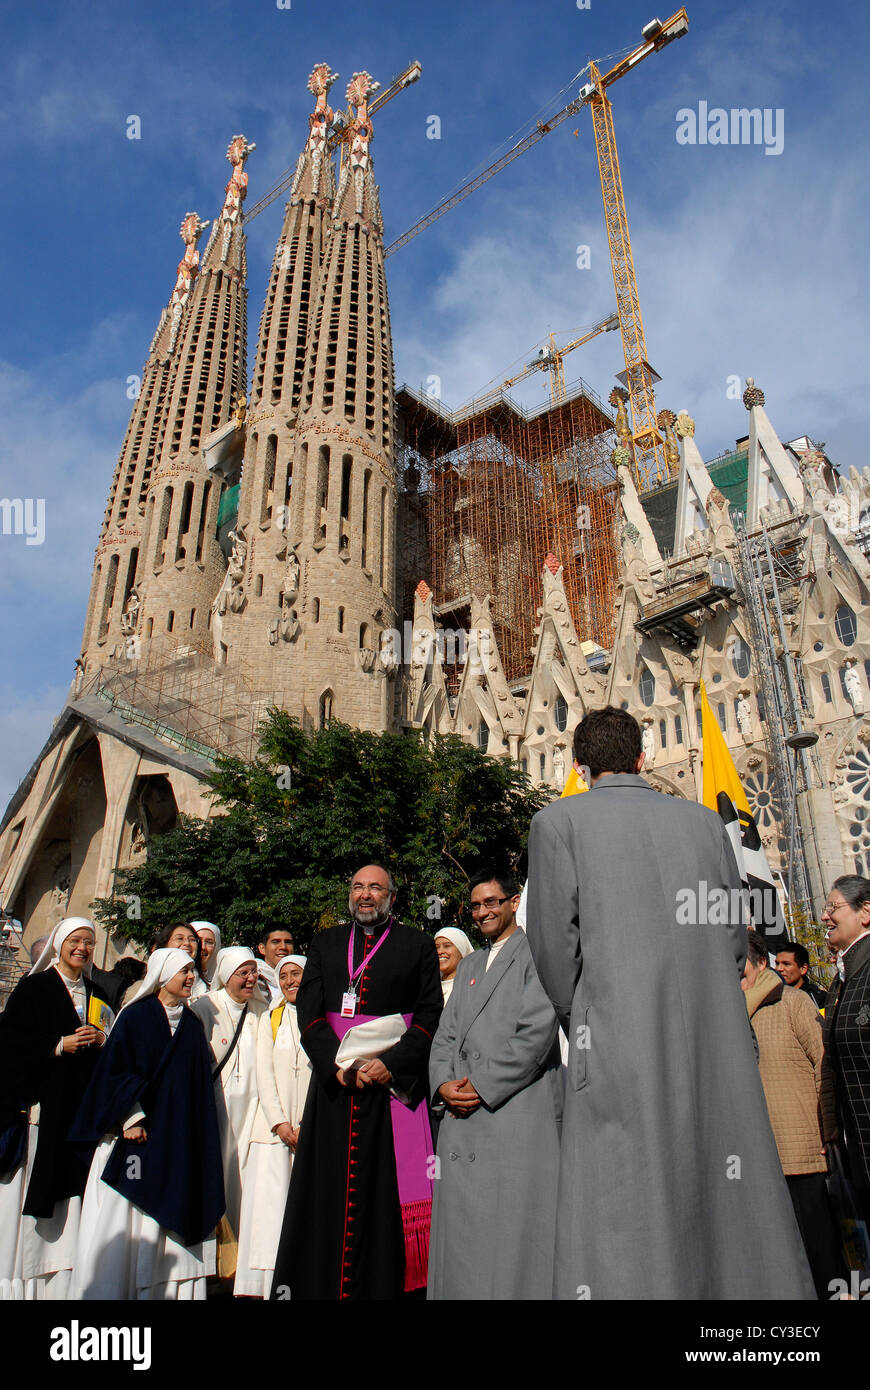 priests, pastors and nuns visiting the Sagrada Familia church, general view of the building,religious sightseeing - Stock Image